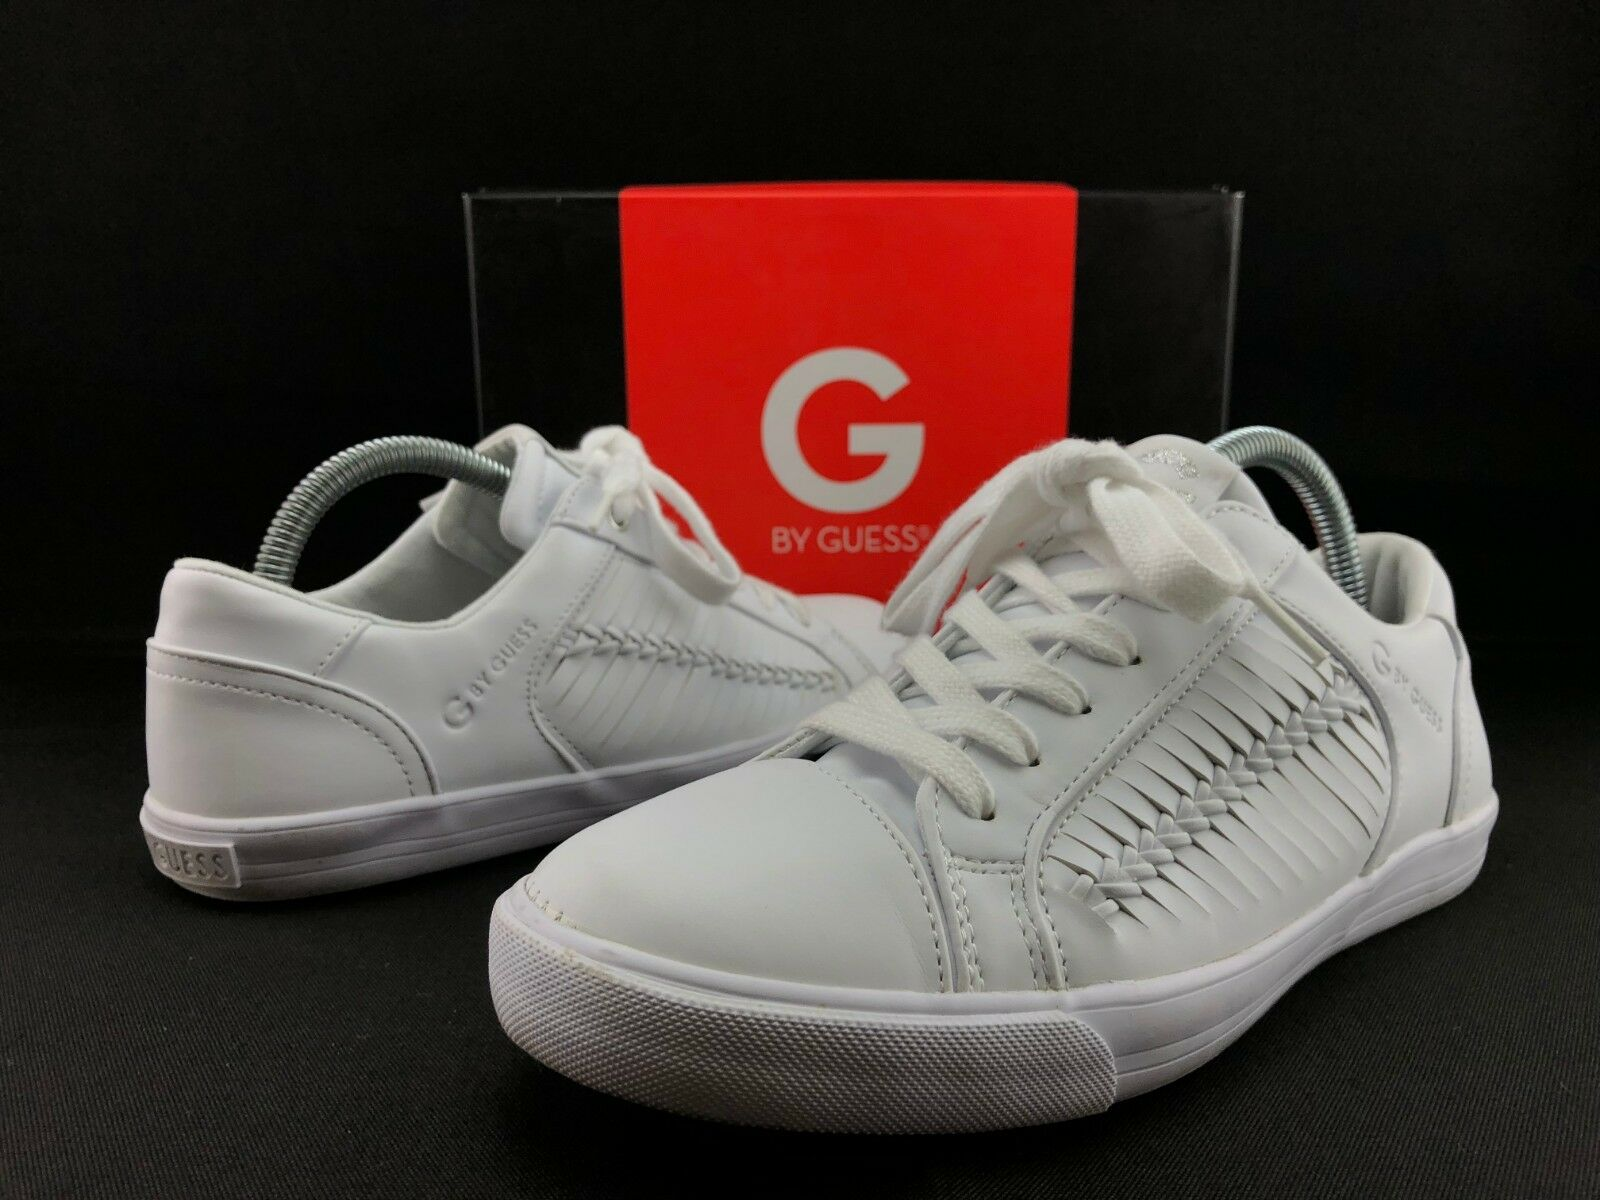 G by GUESS Otalie Women's Distressed White Leather Fashion C415 Shoes US 9 M C415 Fashion e10cba